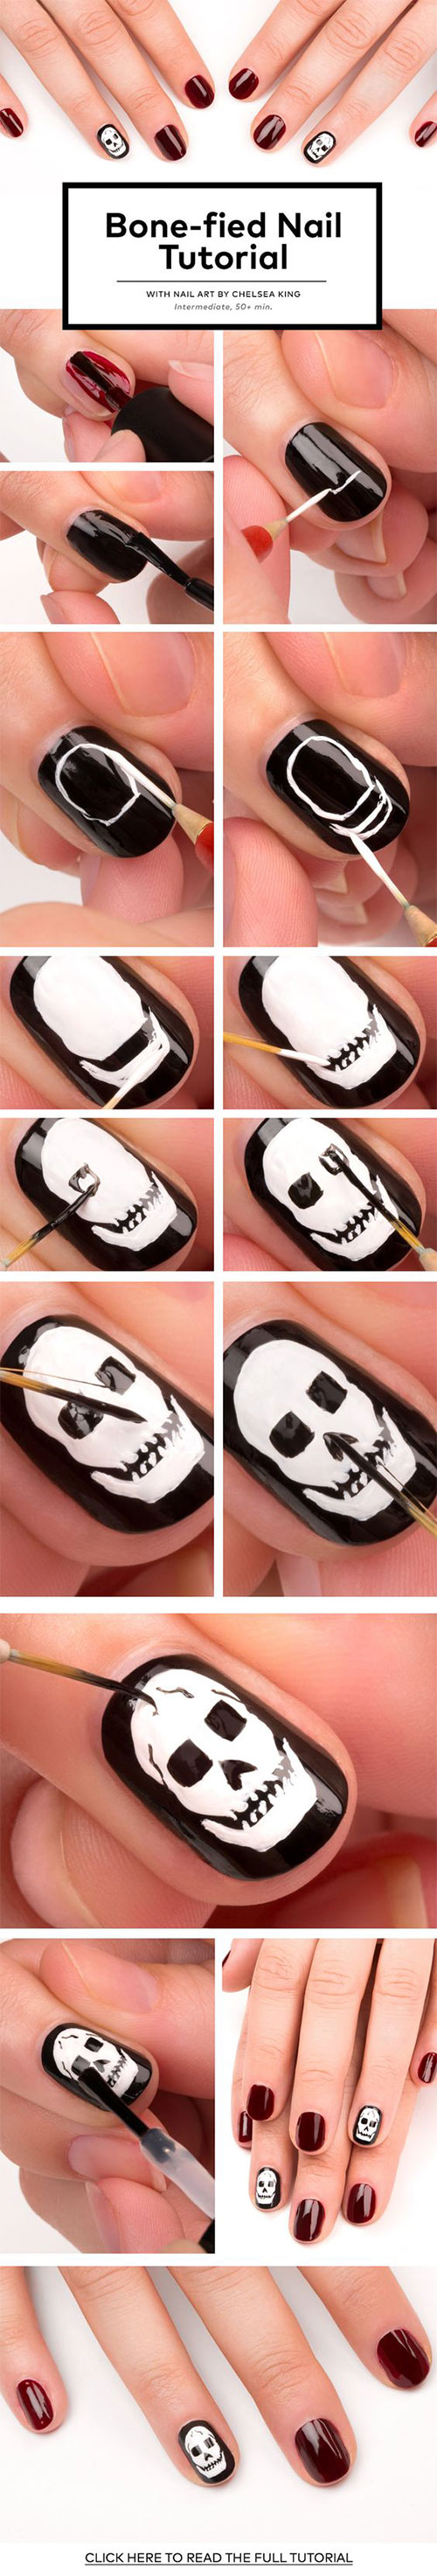 18-Easy-Step-By-Step-Halloween-Nails-Art-Tutorials-For-Beginners-2017-14